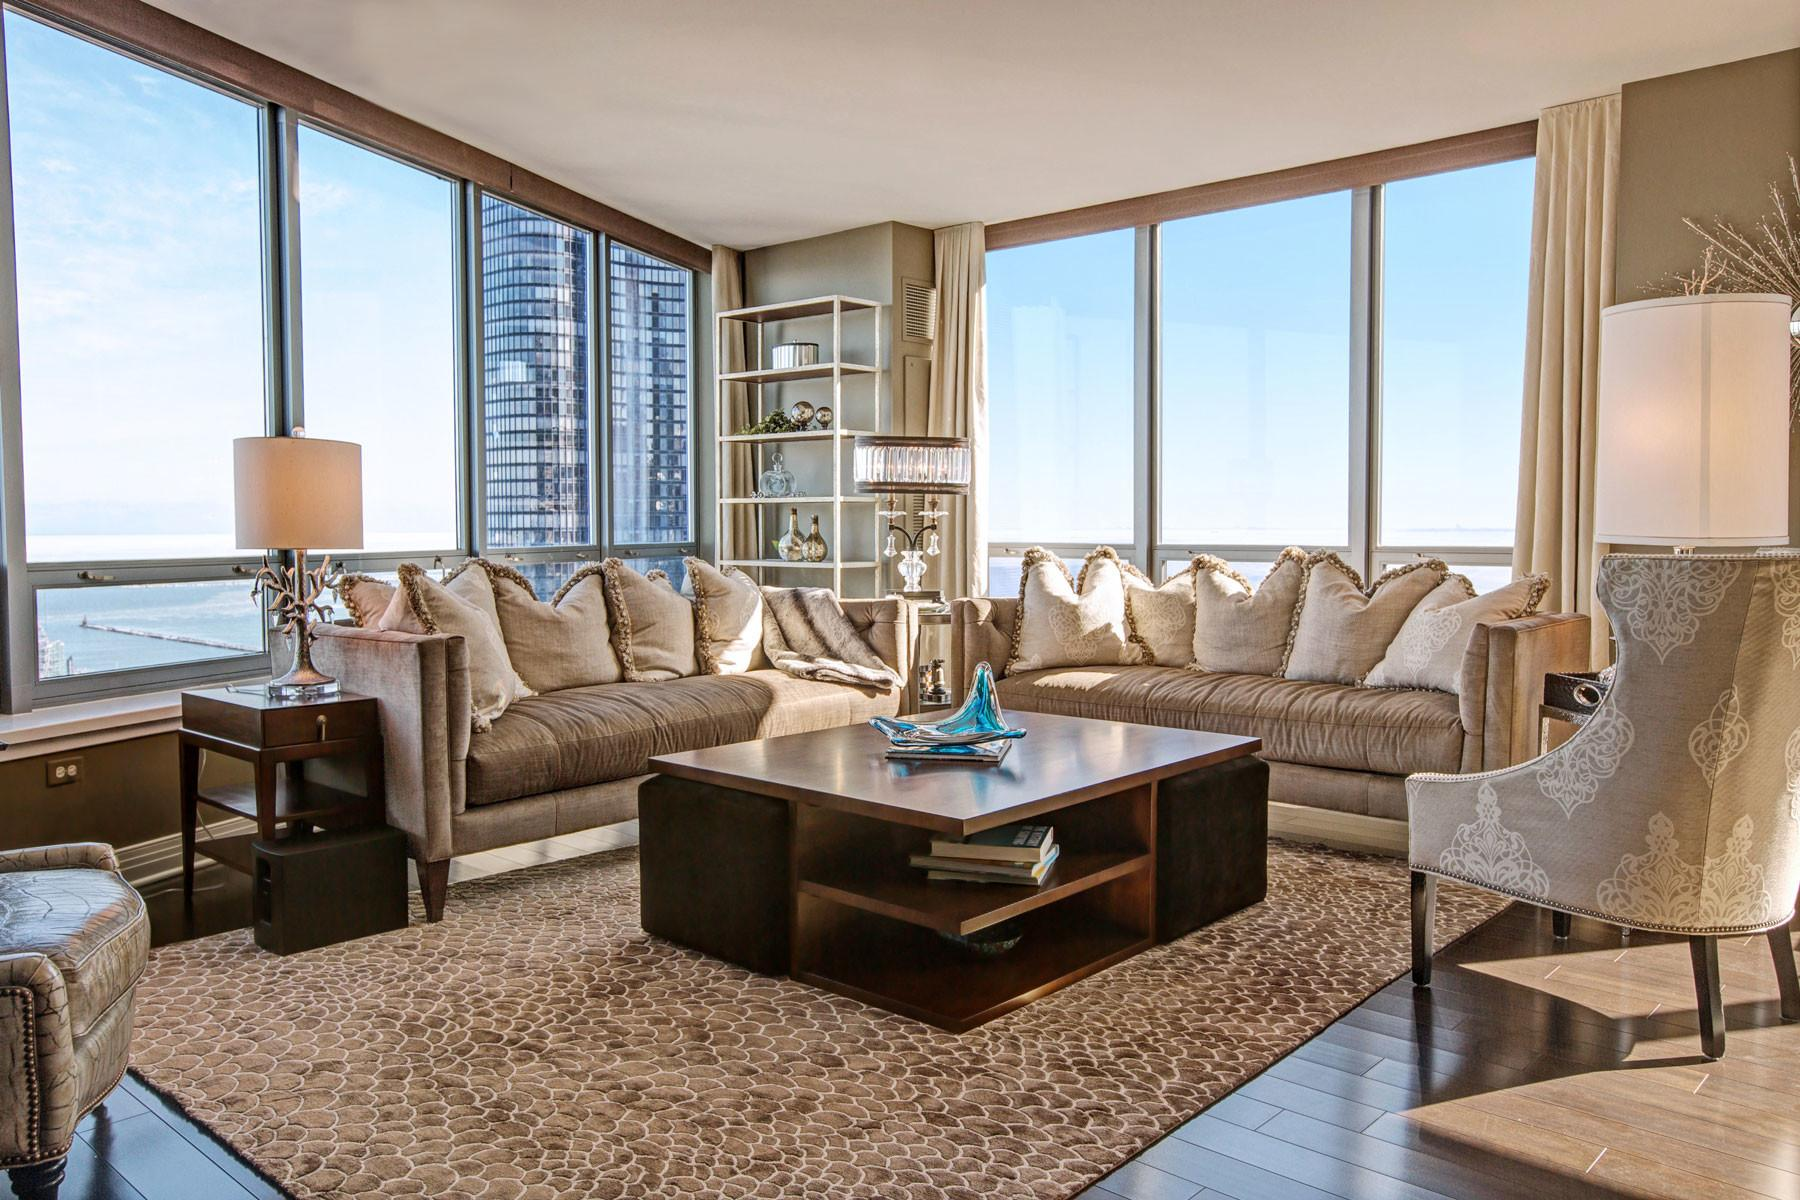 Luxury Chicago Condo Interior Design Apartment